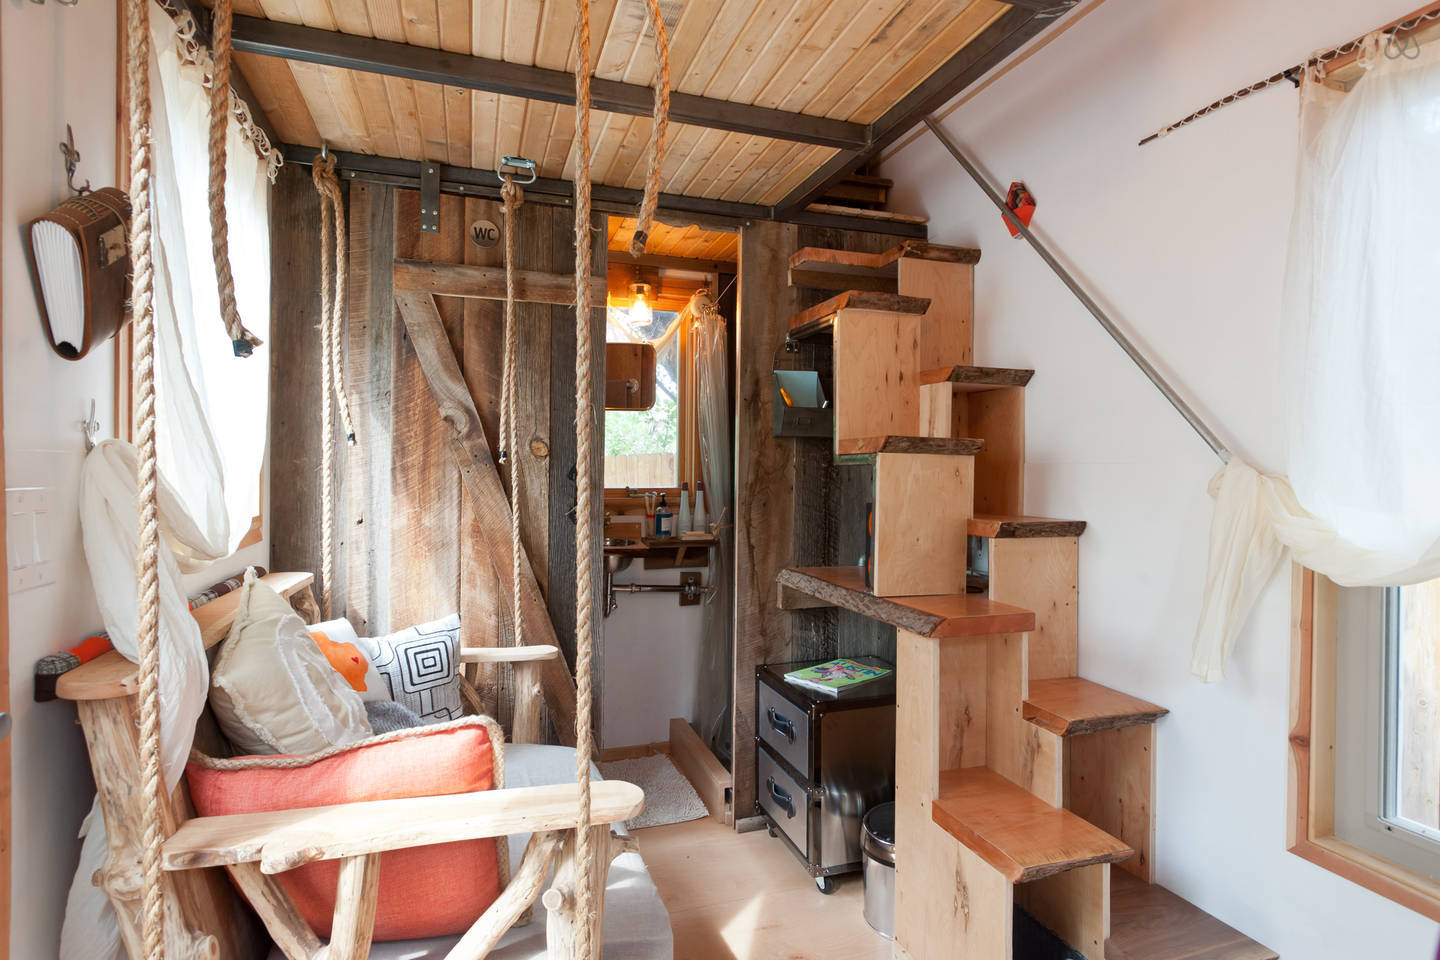 Images Via Tiny House Living · Hip East Side Tiny Pad Interior